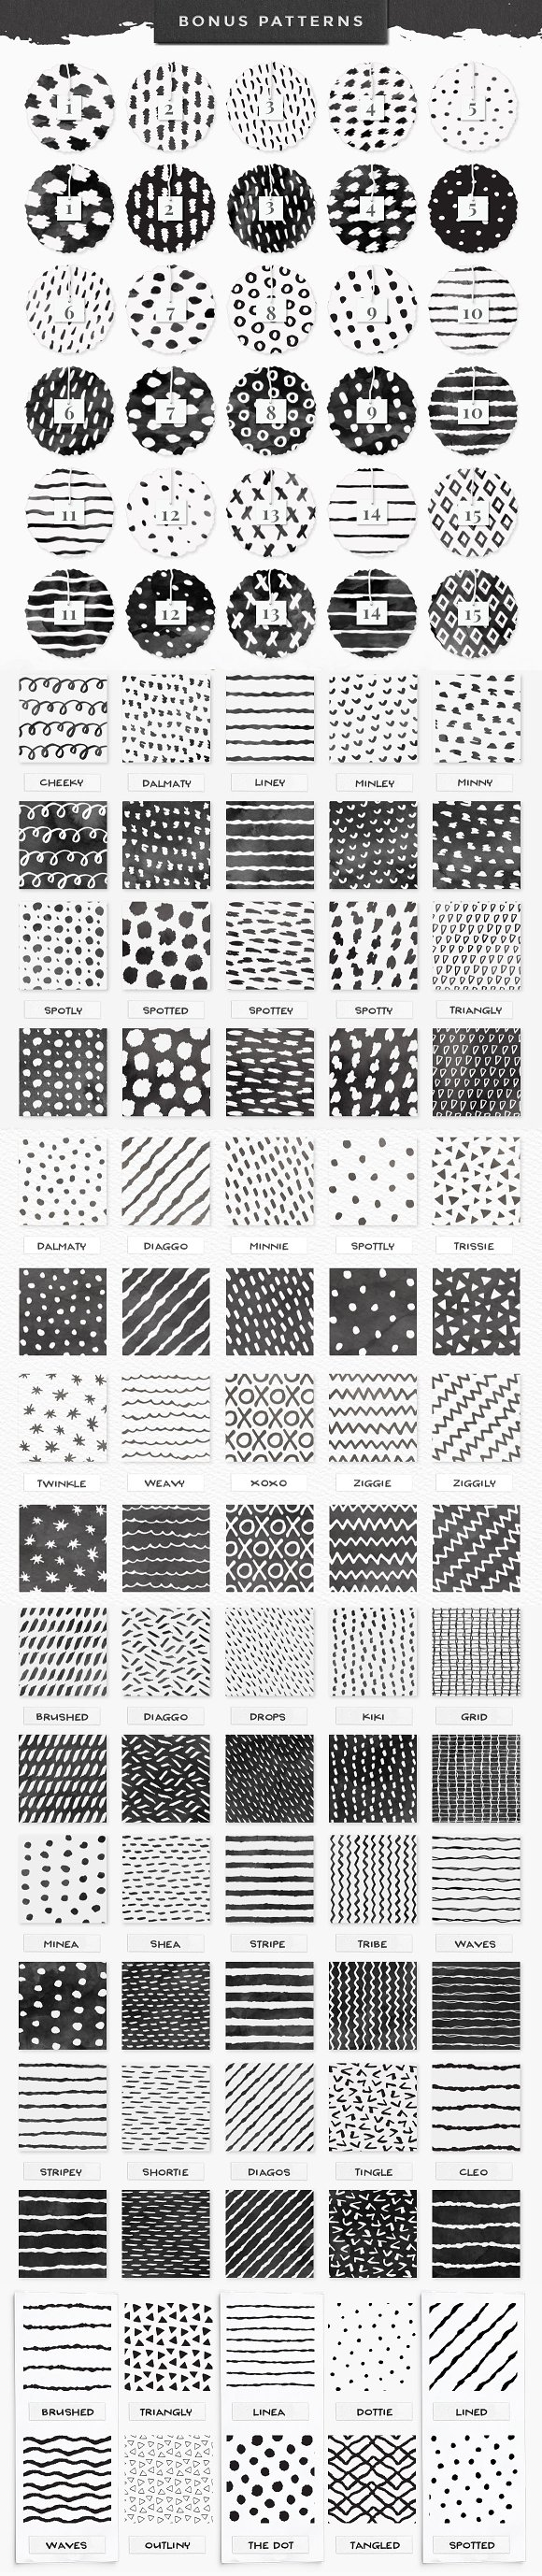 InkBox - 240 Inky Patterns + Extras! in Patterns - product preview 7